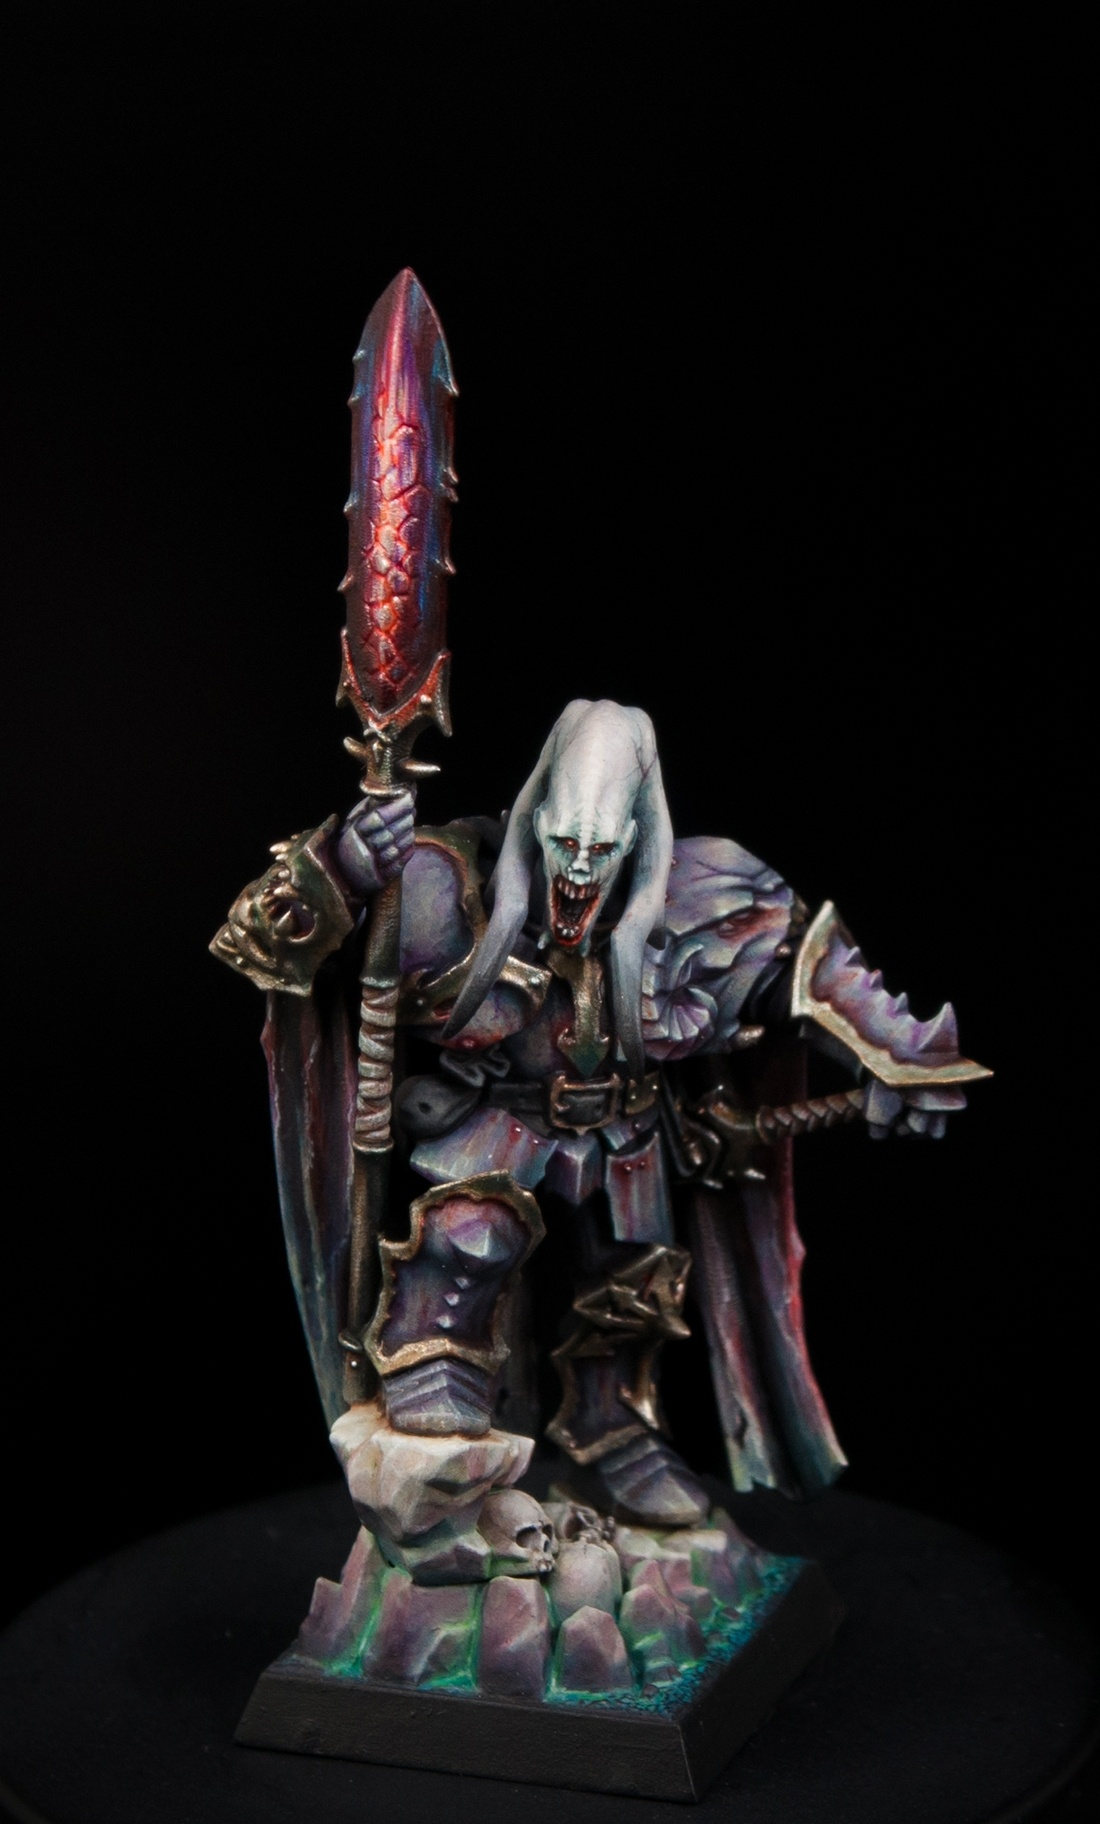 Chaos Lord Of Slaanesh By Paweł Makuch Quot Monstroys Quot 183 Putty